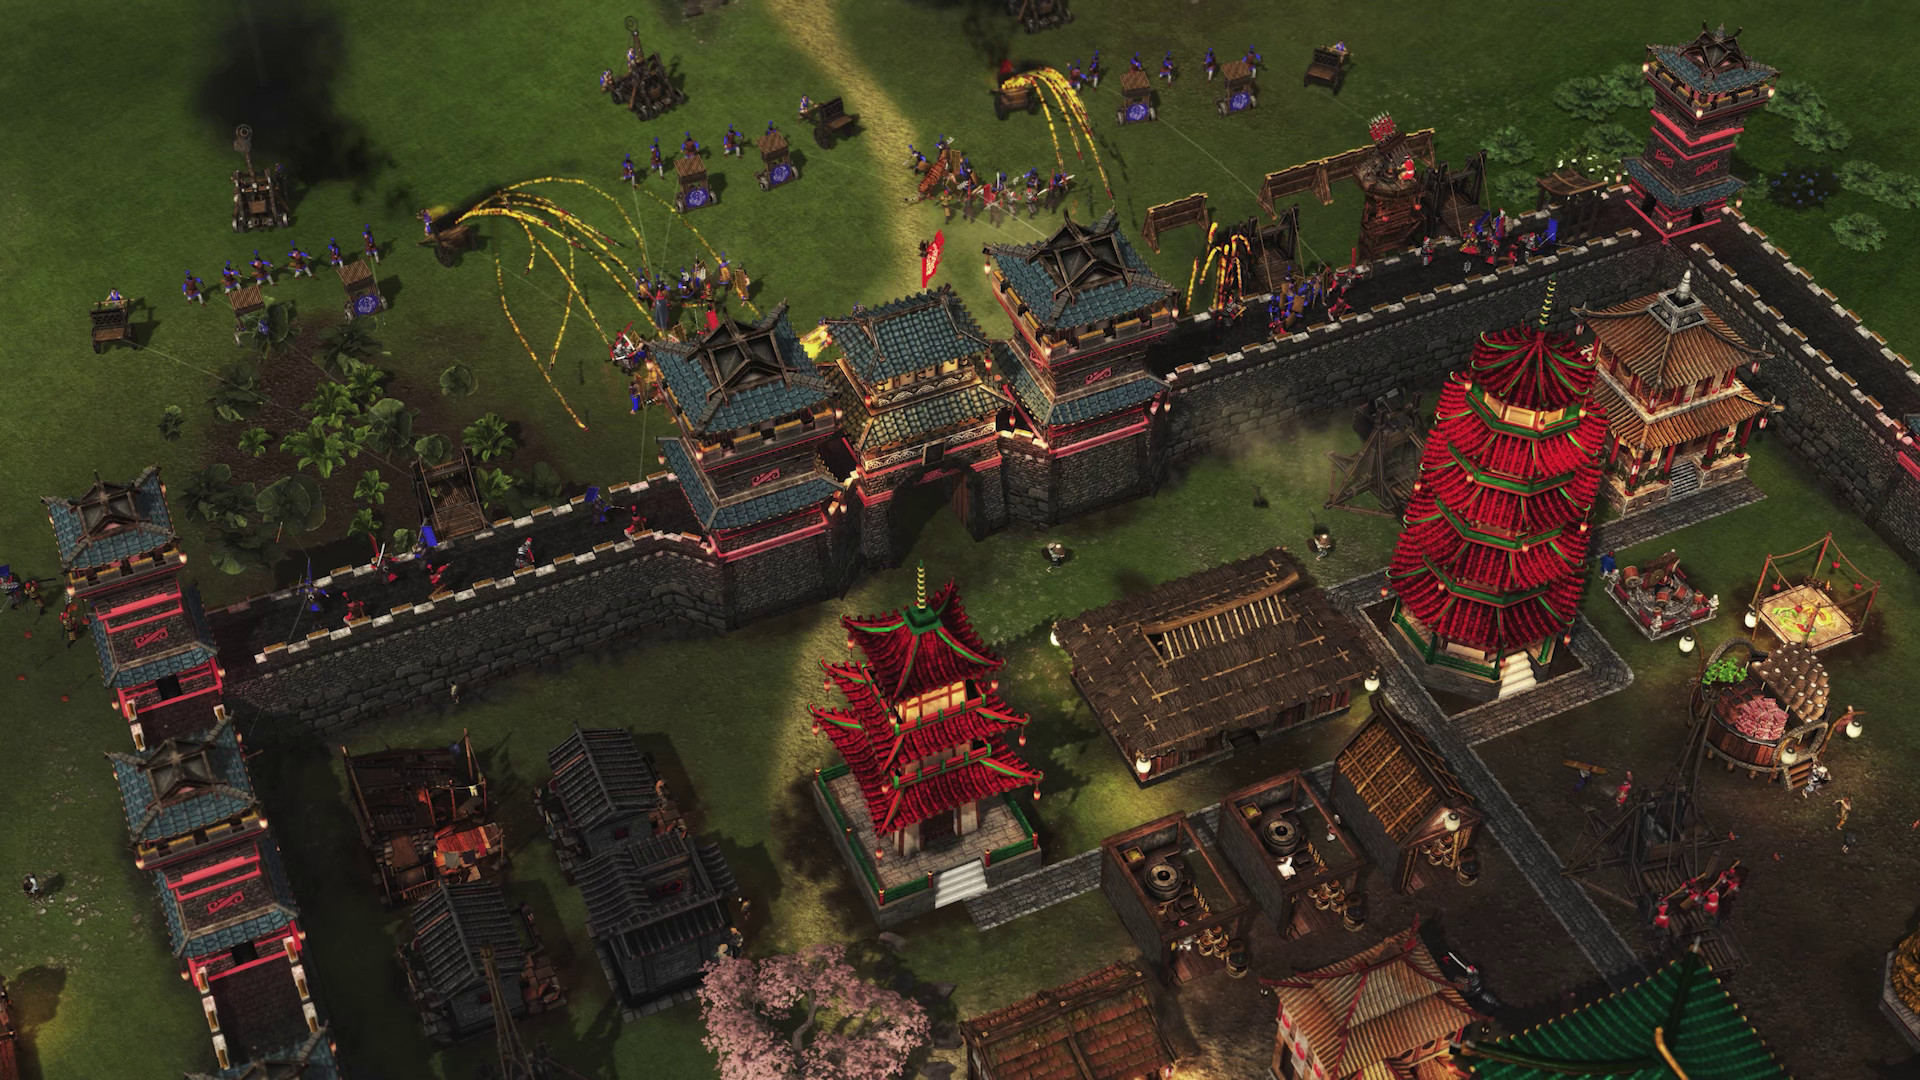 Stronghold: Warlords' next AI lord is Kublai Khan, who enjoys life's finer things